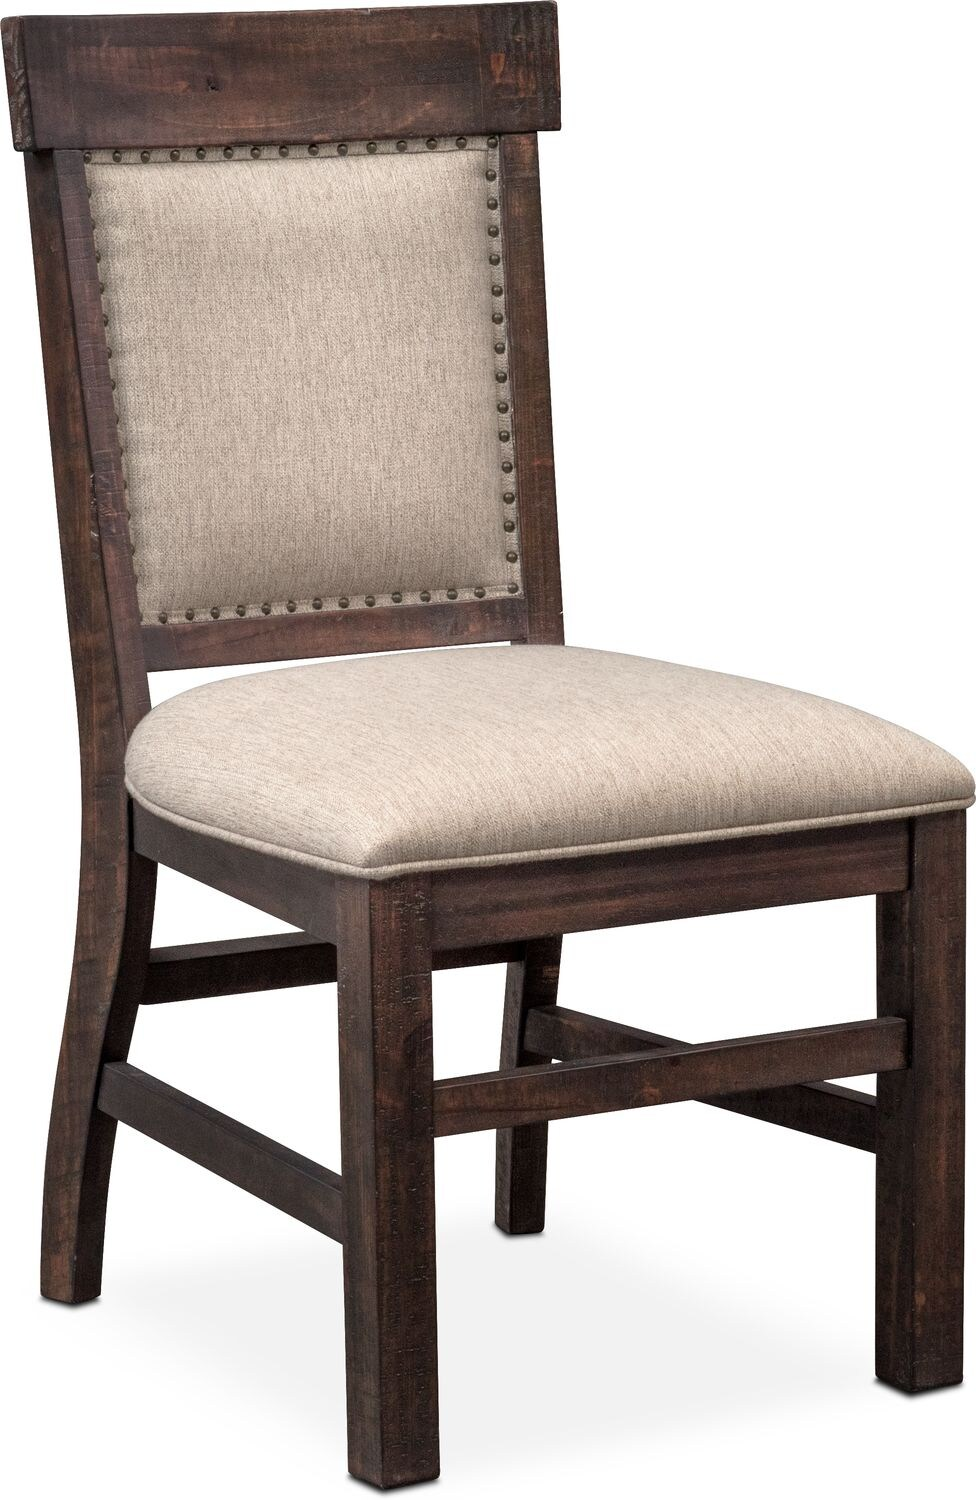 Charthouse Upholstered Side Chair - Charcoal  sc 1 st  American Signature Furniture & Dining Room Chairs | Seating | American Signature Furniture